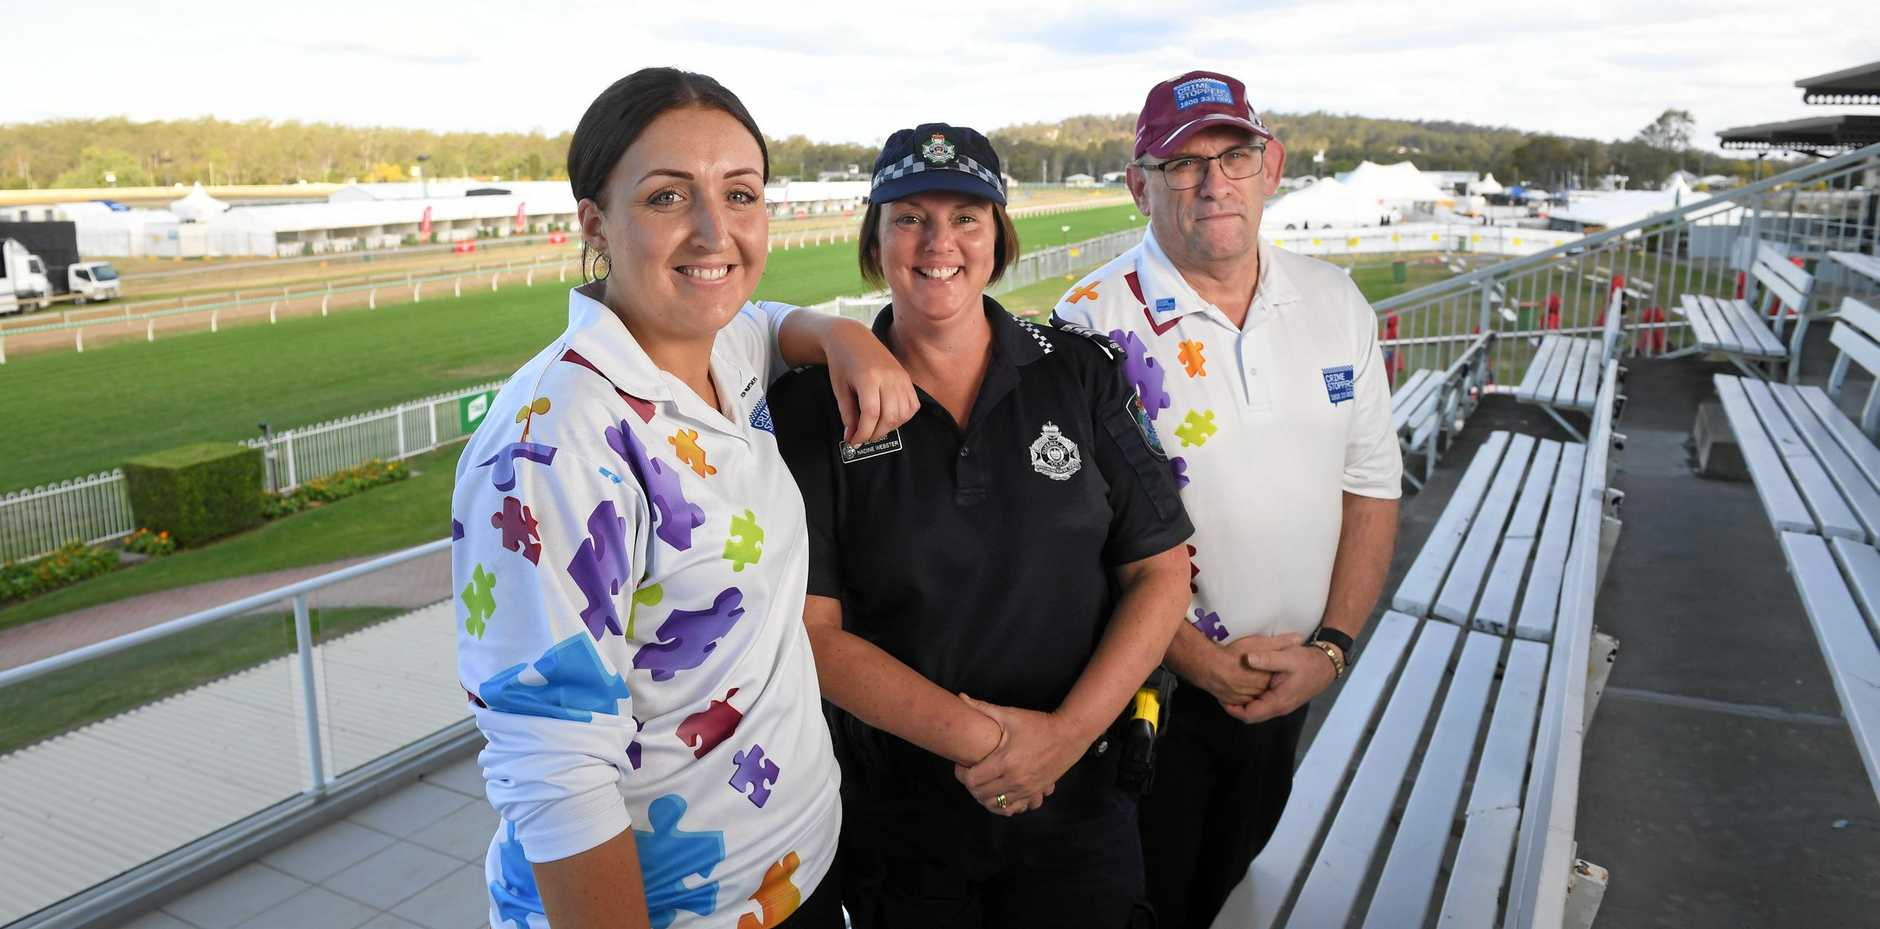 RACE DAY: Ipswich Crimestoppers Volunteer Committee secretary Teigan Hogbin, Sergeant Nadine Webster, and Ipswich Crimestoppers Volunteer Committee chairperson Scott Mawhinney promote the upcoming Crimestoppers Race Day.